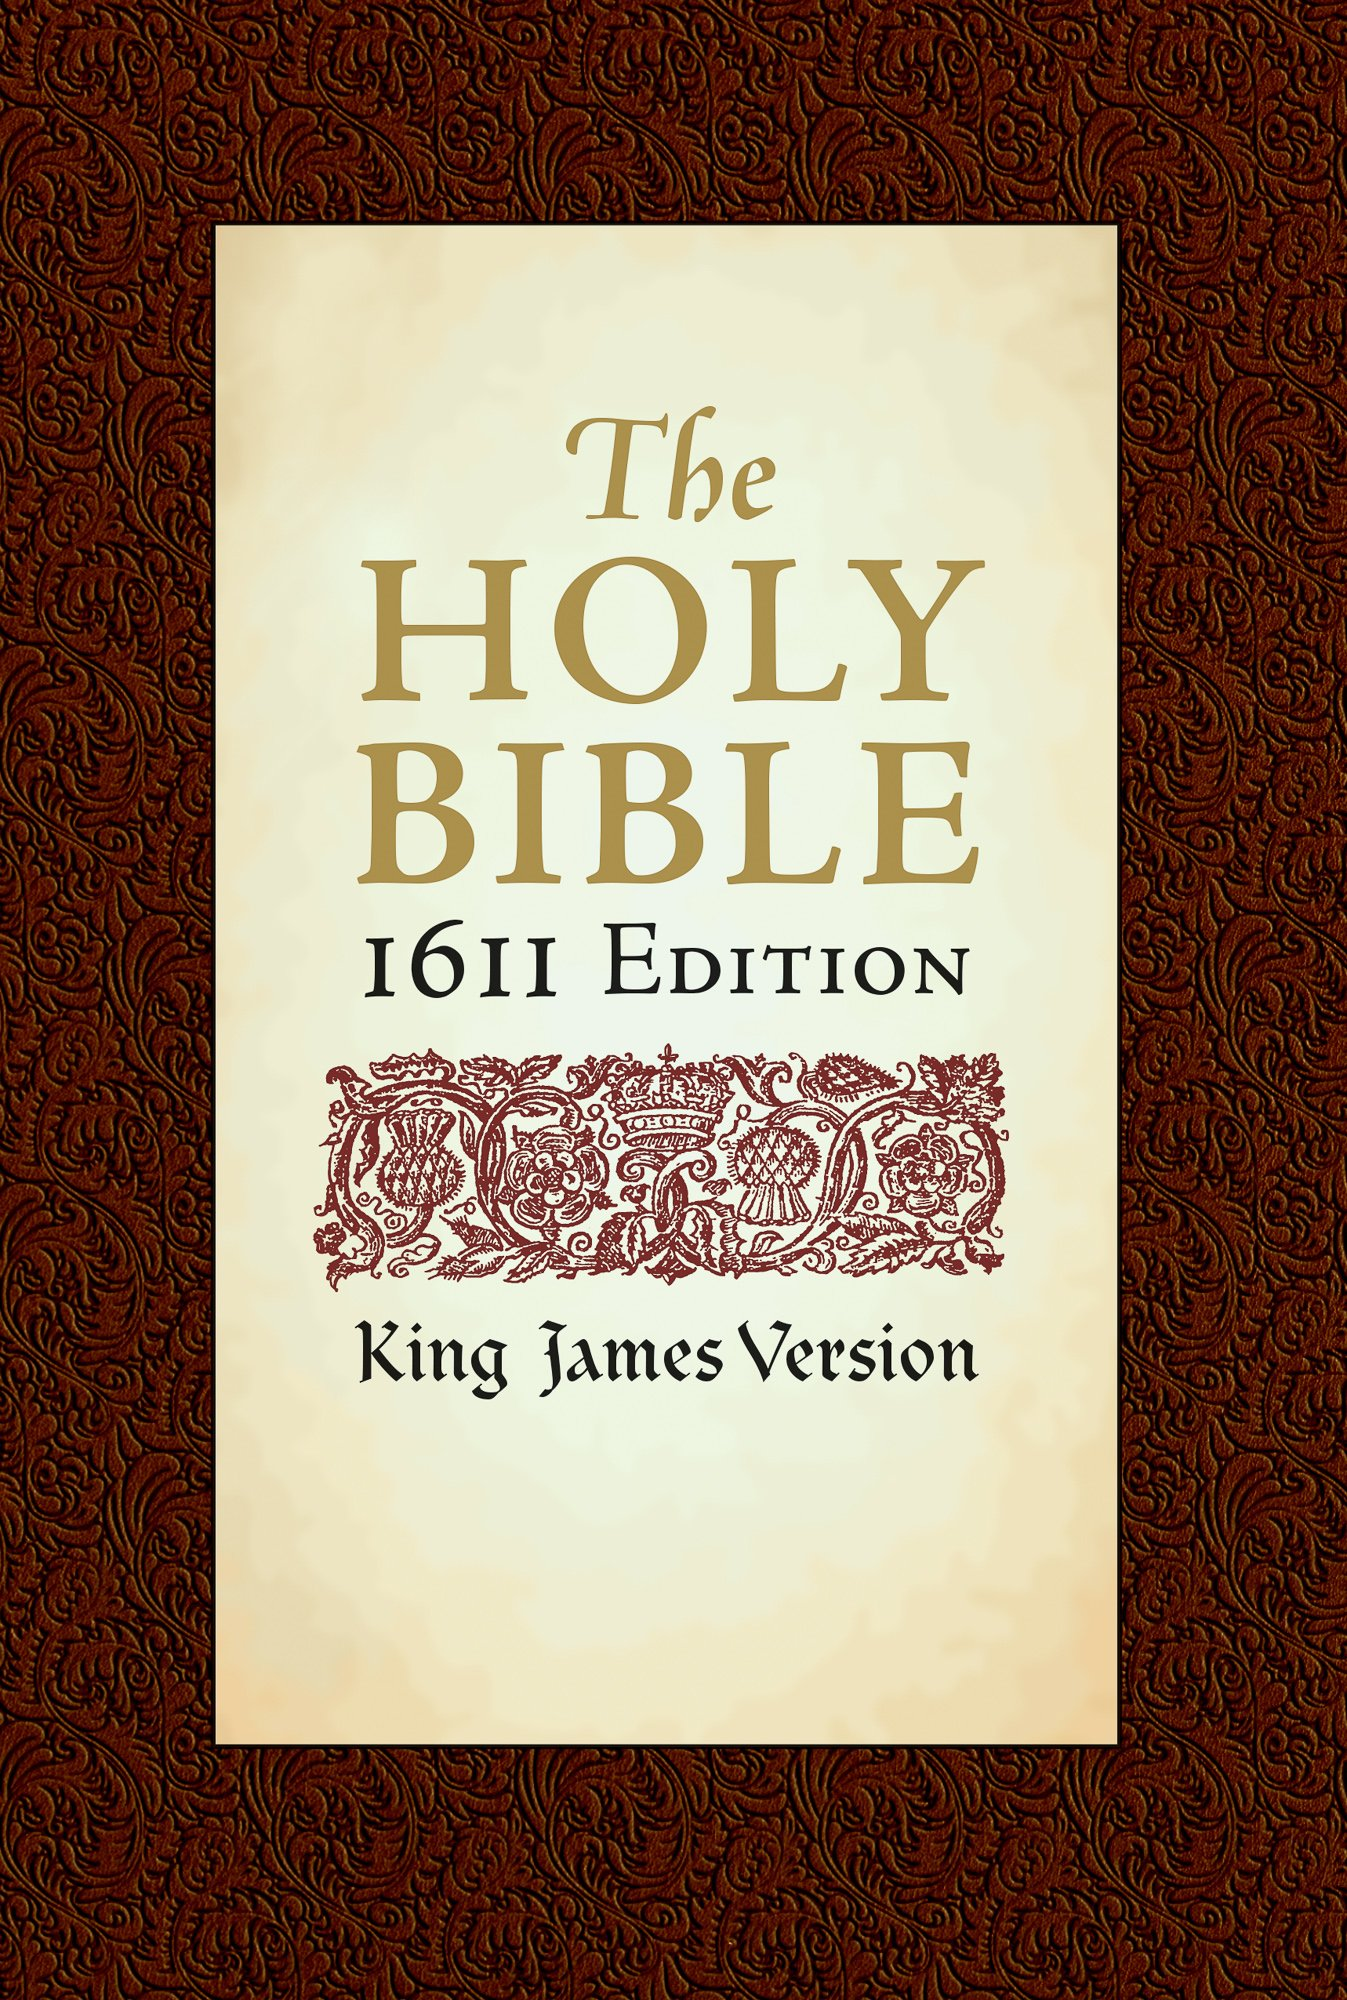 Image result for king james bible